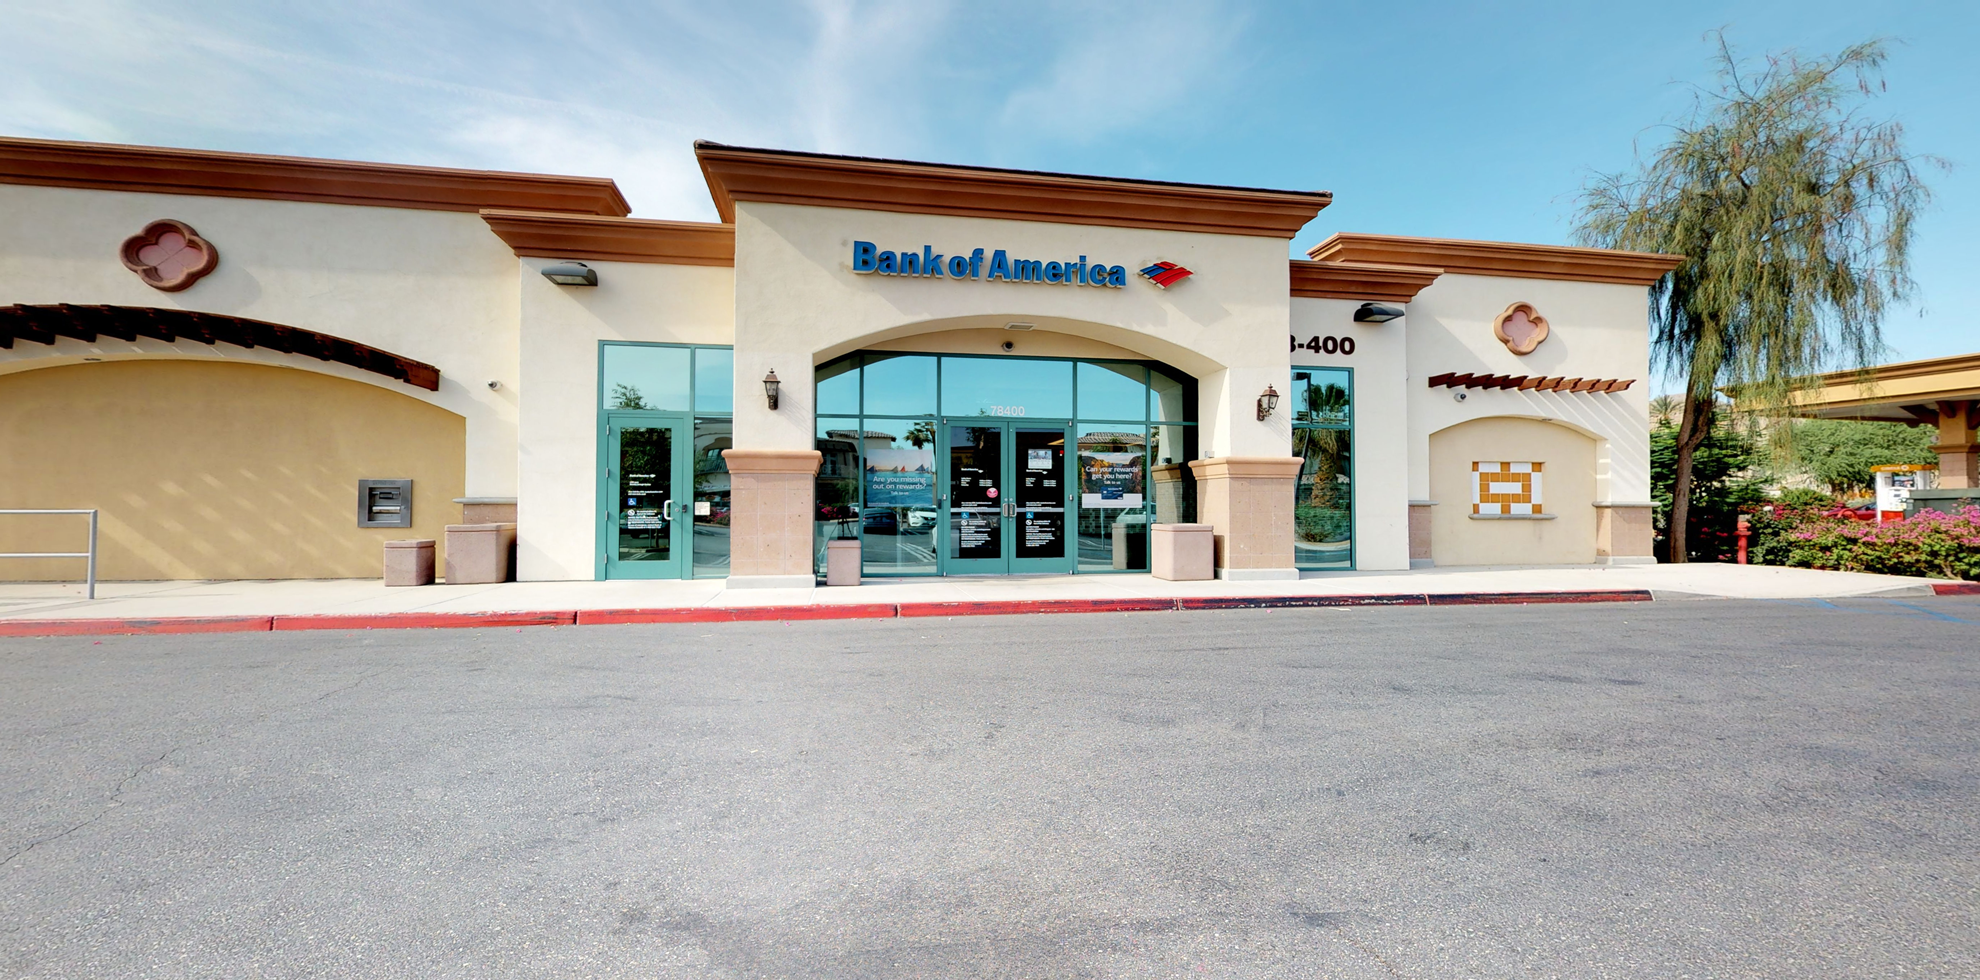 Bank of America financial center with drive-thru ATM   78-400 Highway 111, La Quinta, CA 92253